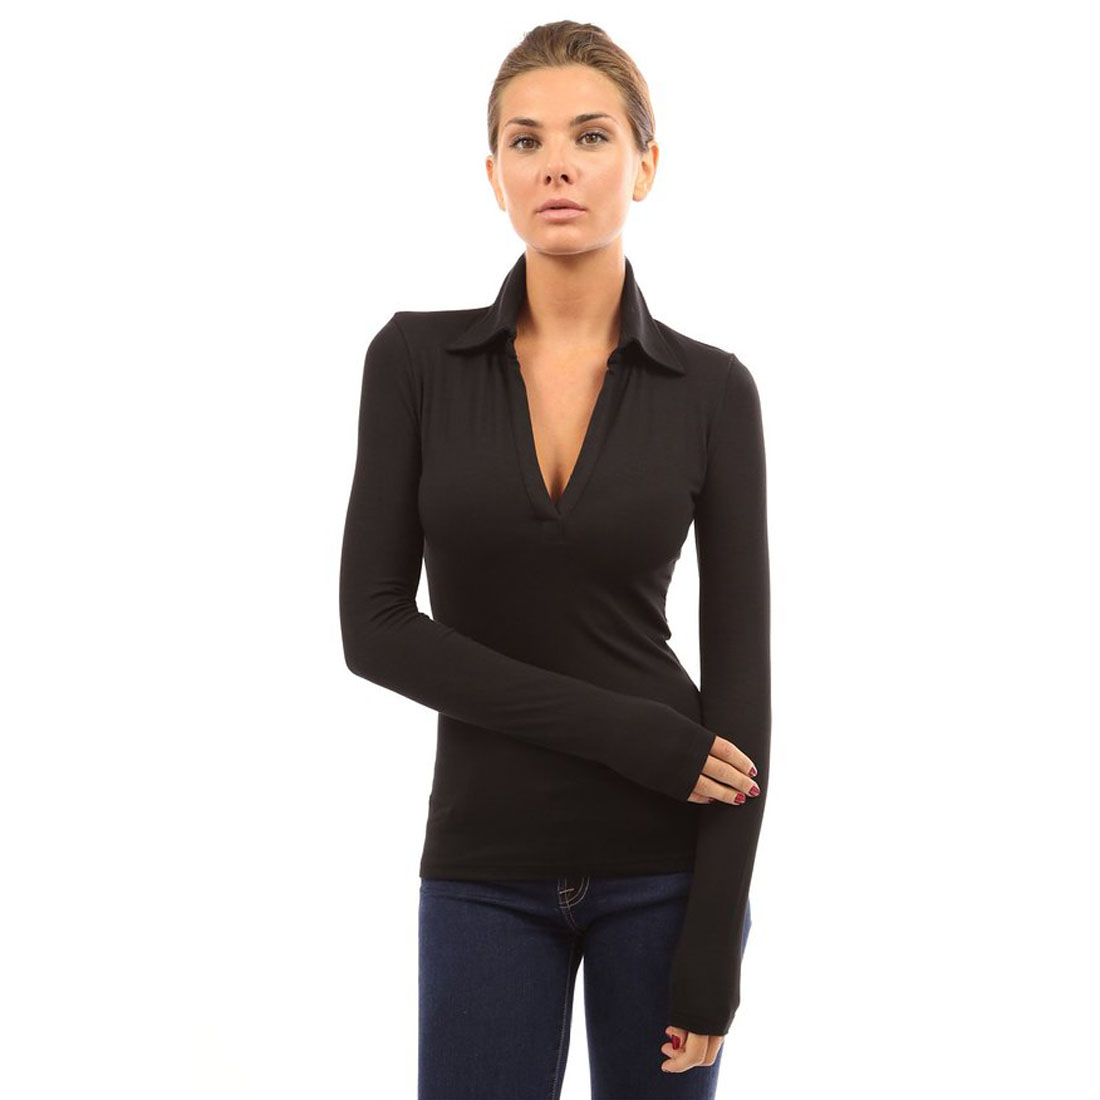 Womens v neck polo shirt long sleeve slim fit casual for Women s turquoise long sleeve shirt